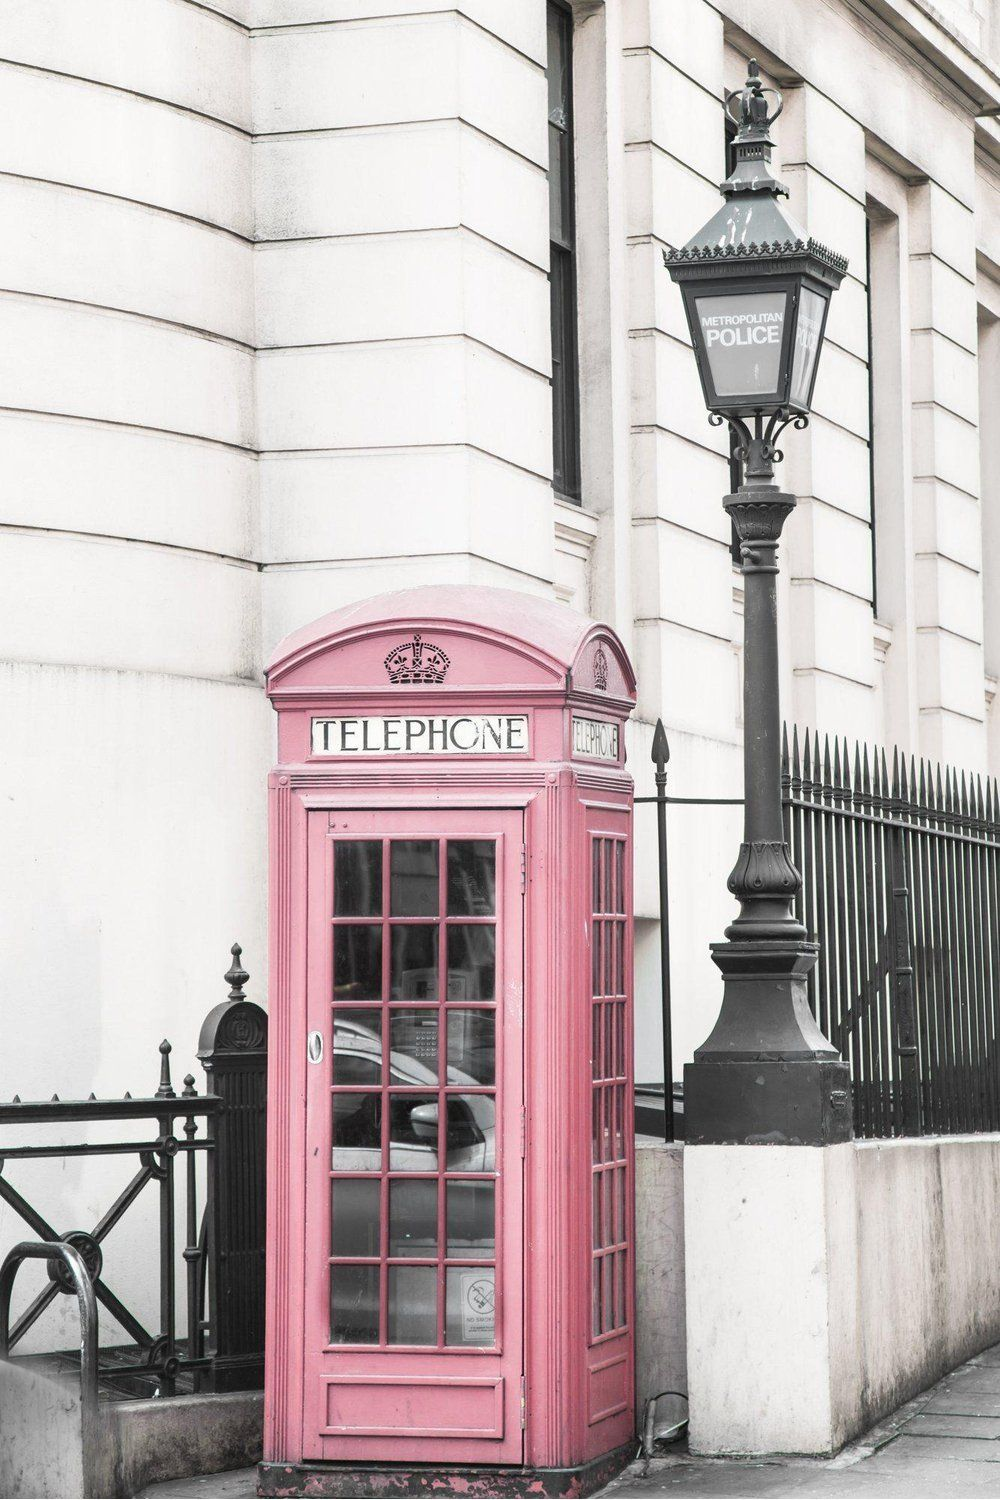 London Print - Telephone Booth - 12x18 inches / 1\ White Border